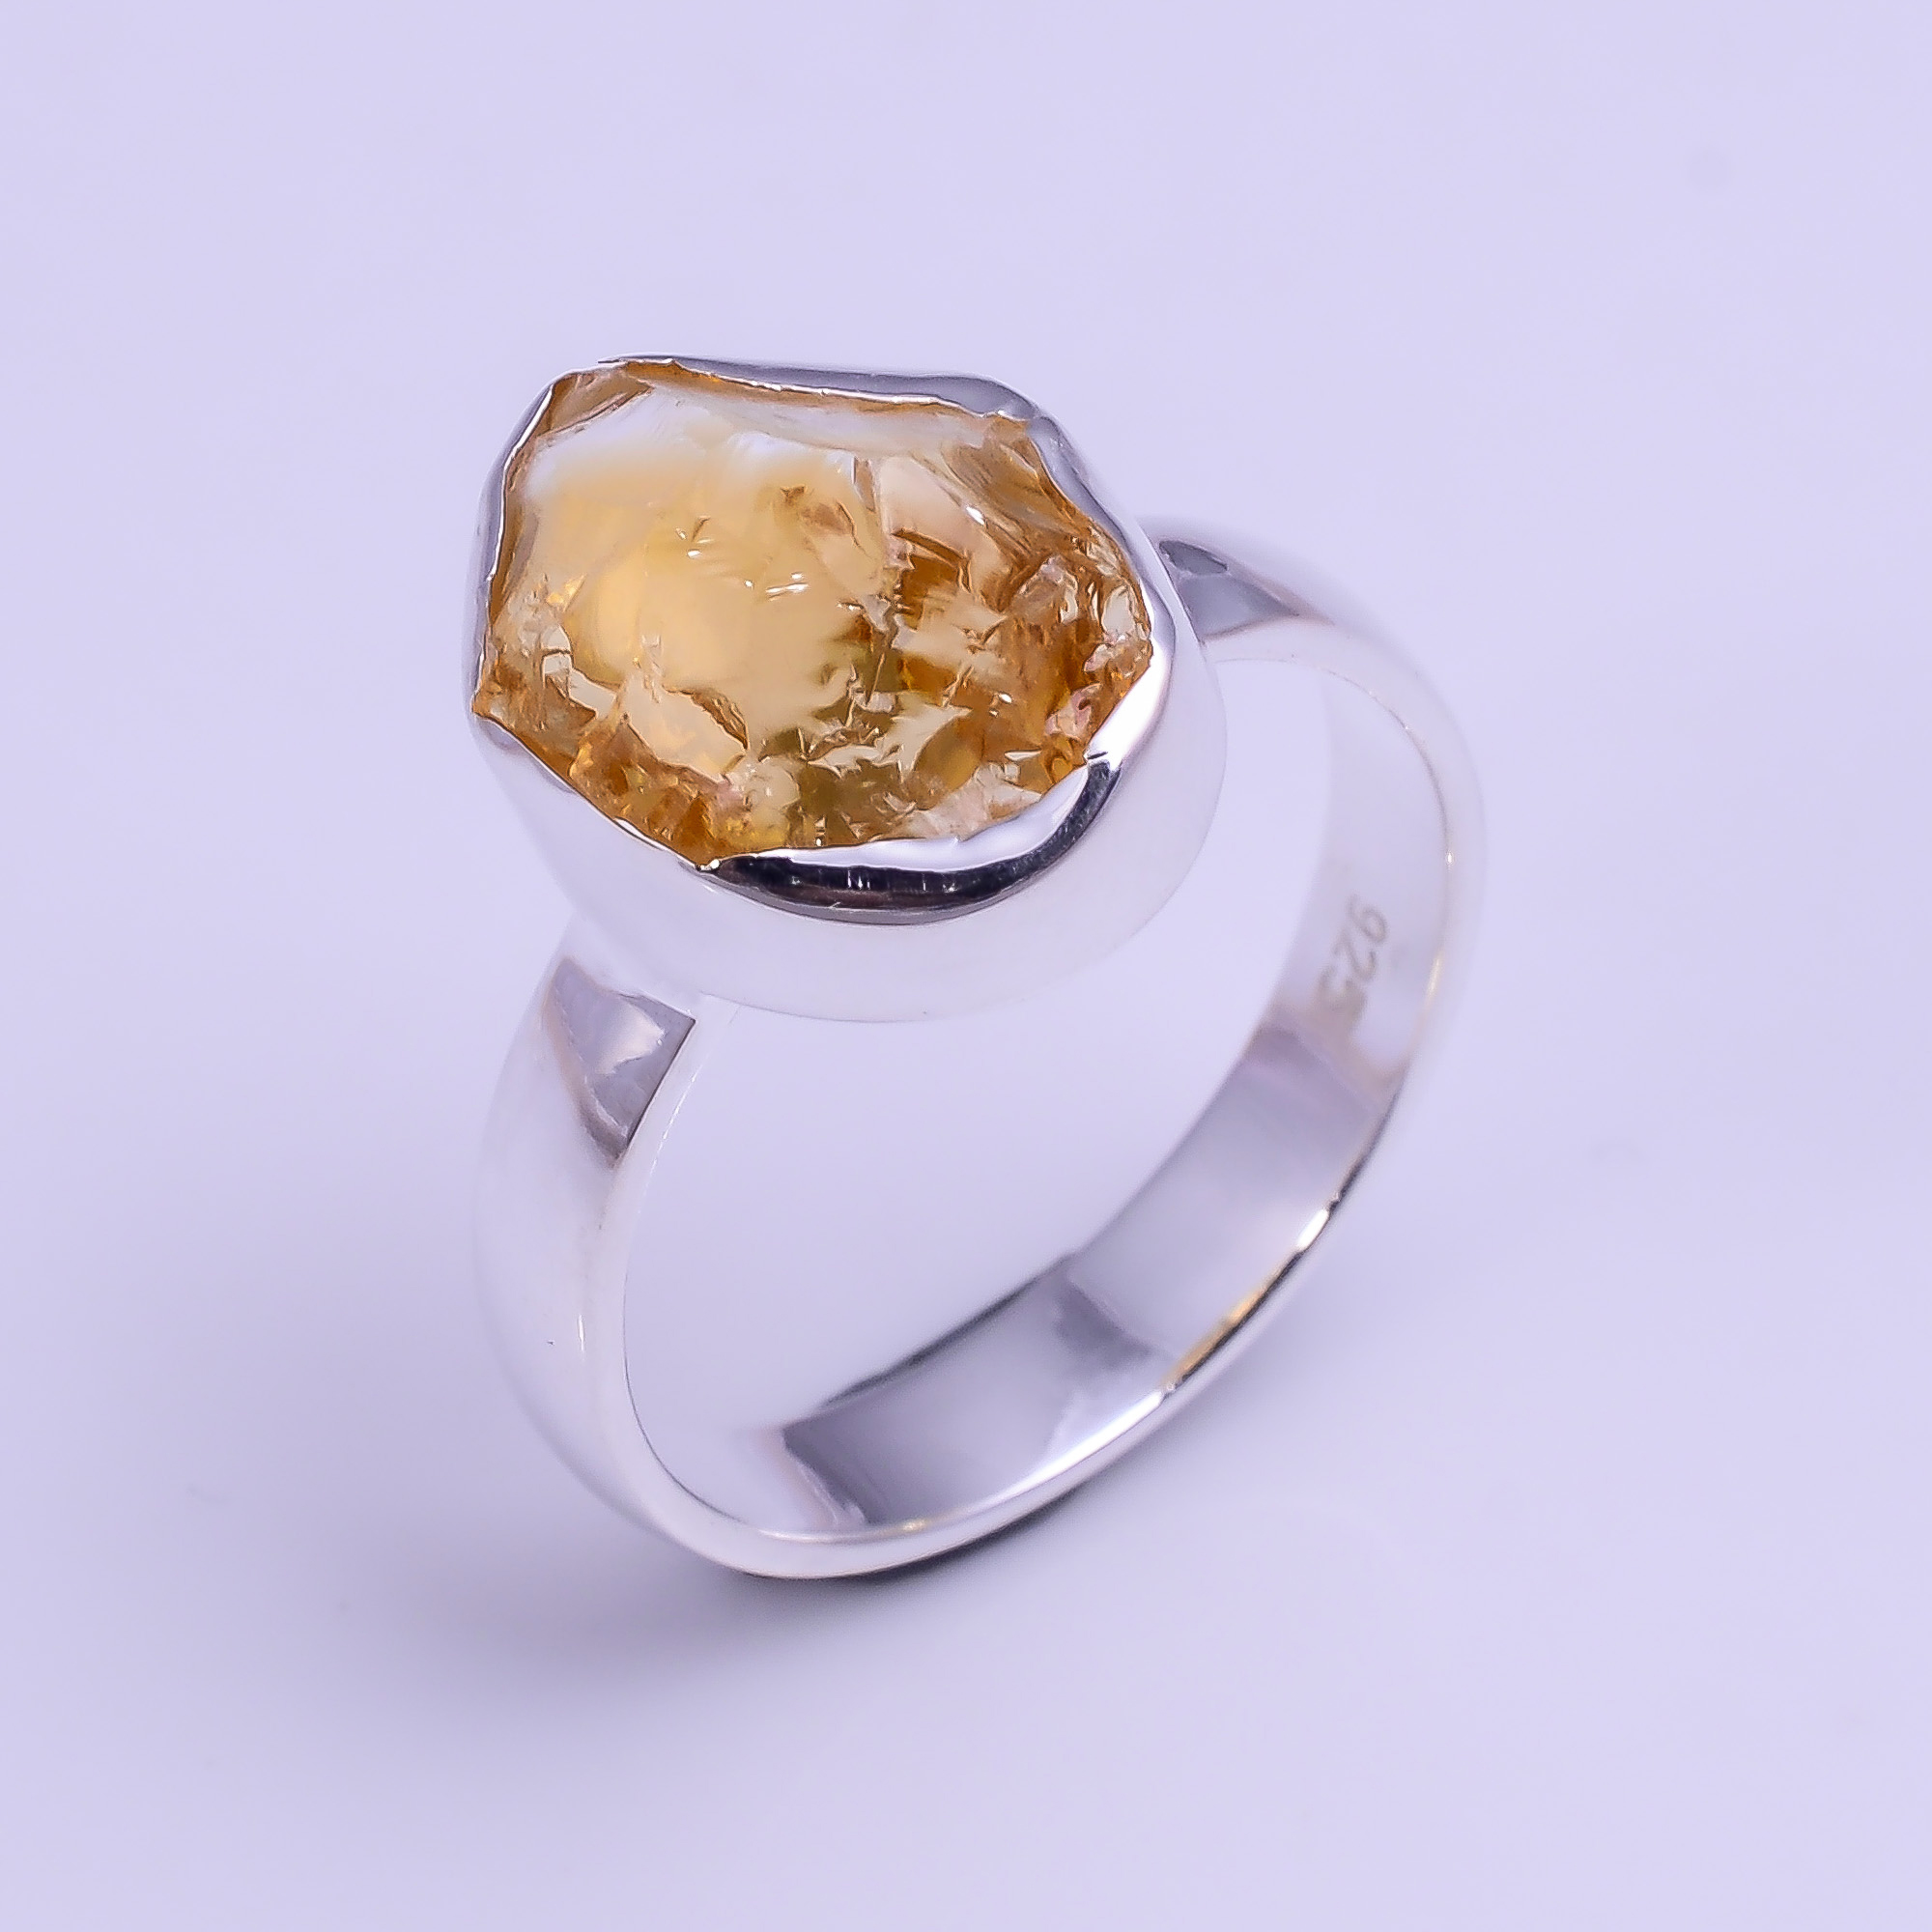 Natural Citrine Raw Gemstone 925 Sterling Silver Ring Size US 7.75